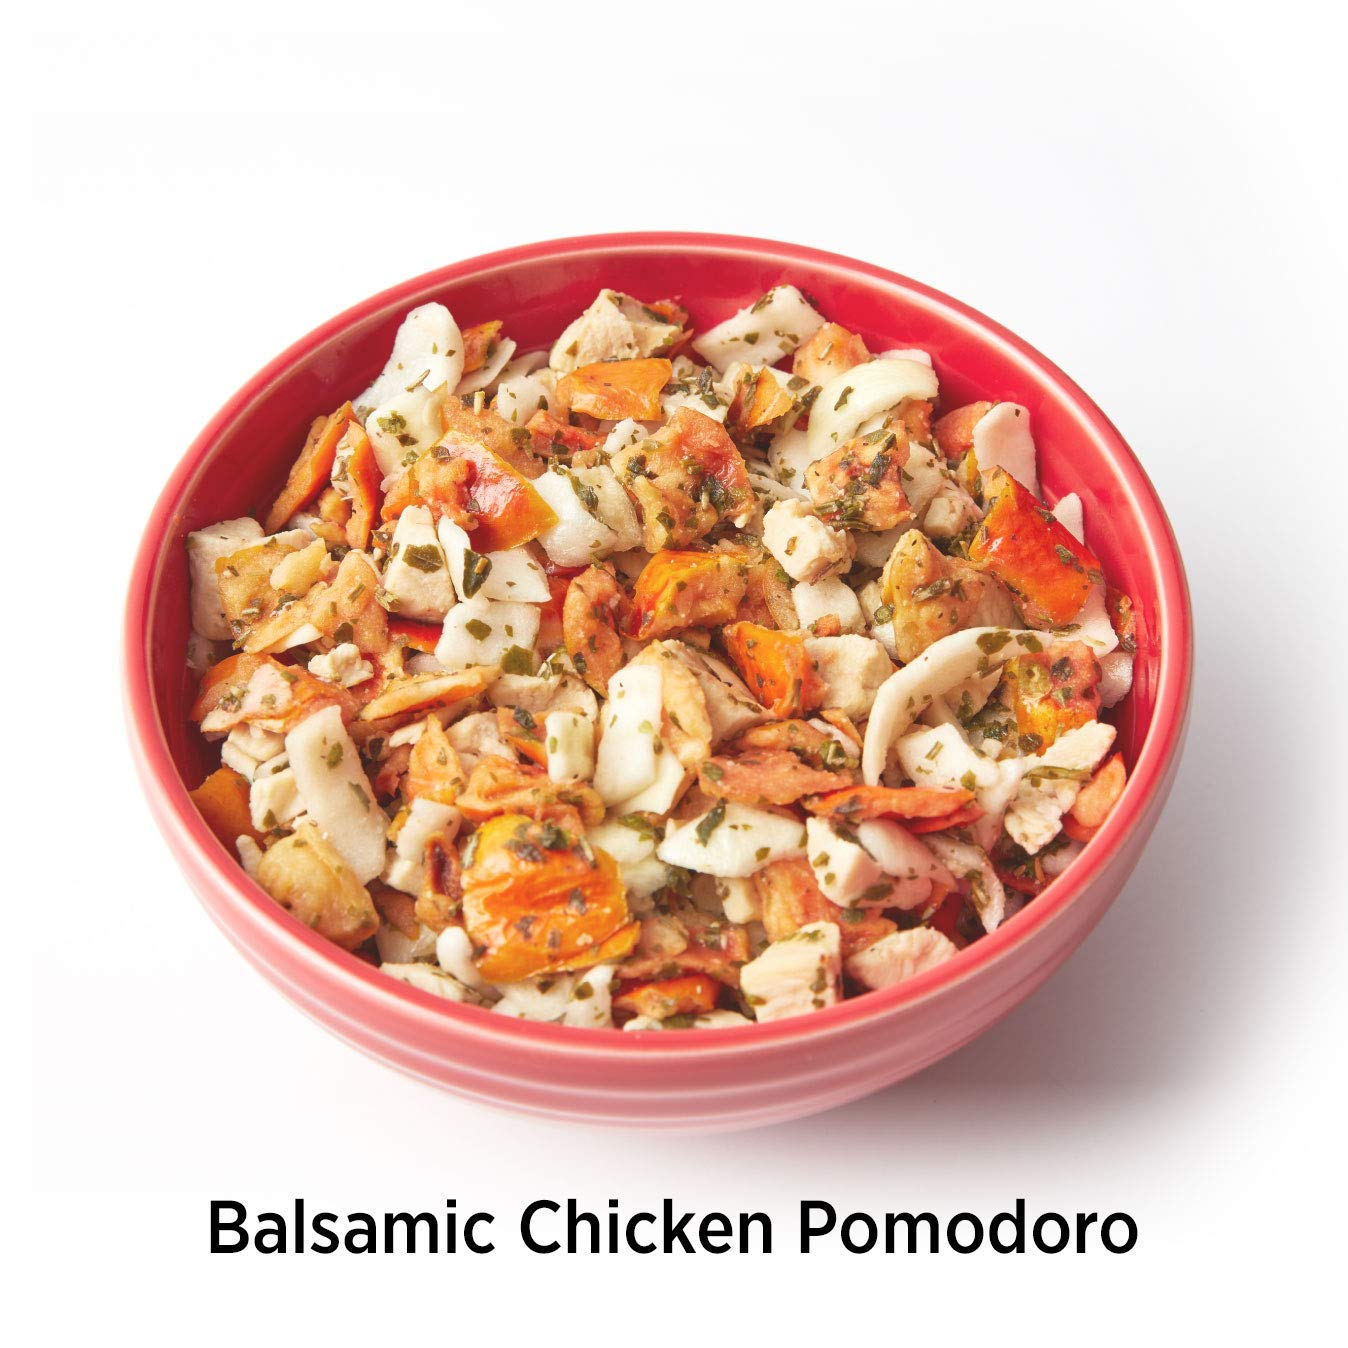 B07GXBN76Q Elements Meals | Balsamic Chicken Pomodoro | 5-Pack | Healthy Freeze Dried Meals | Paleo-Friendly | Delicious, Backpacking and Camping Food | High Protein 71-Cb2WkpJL